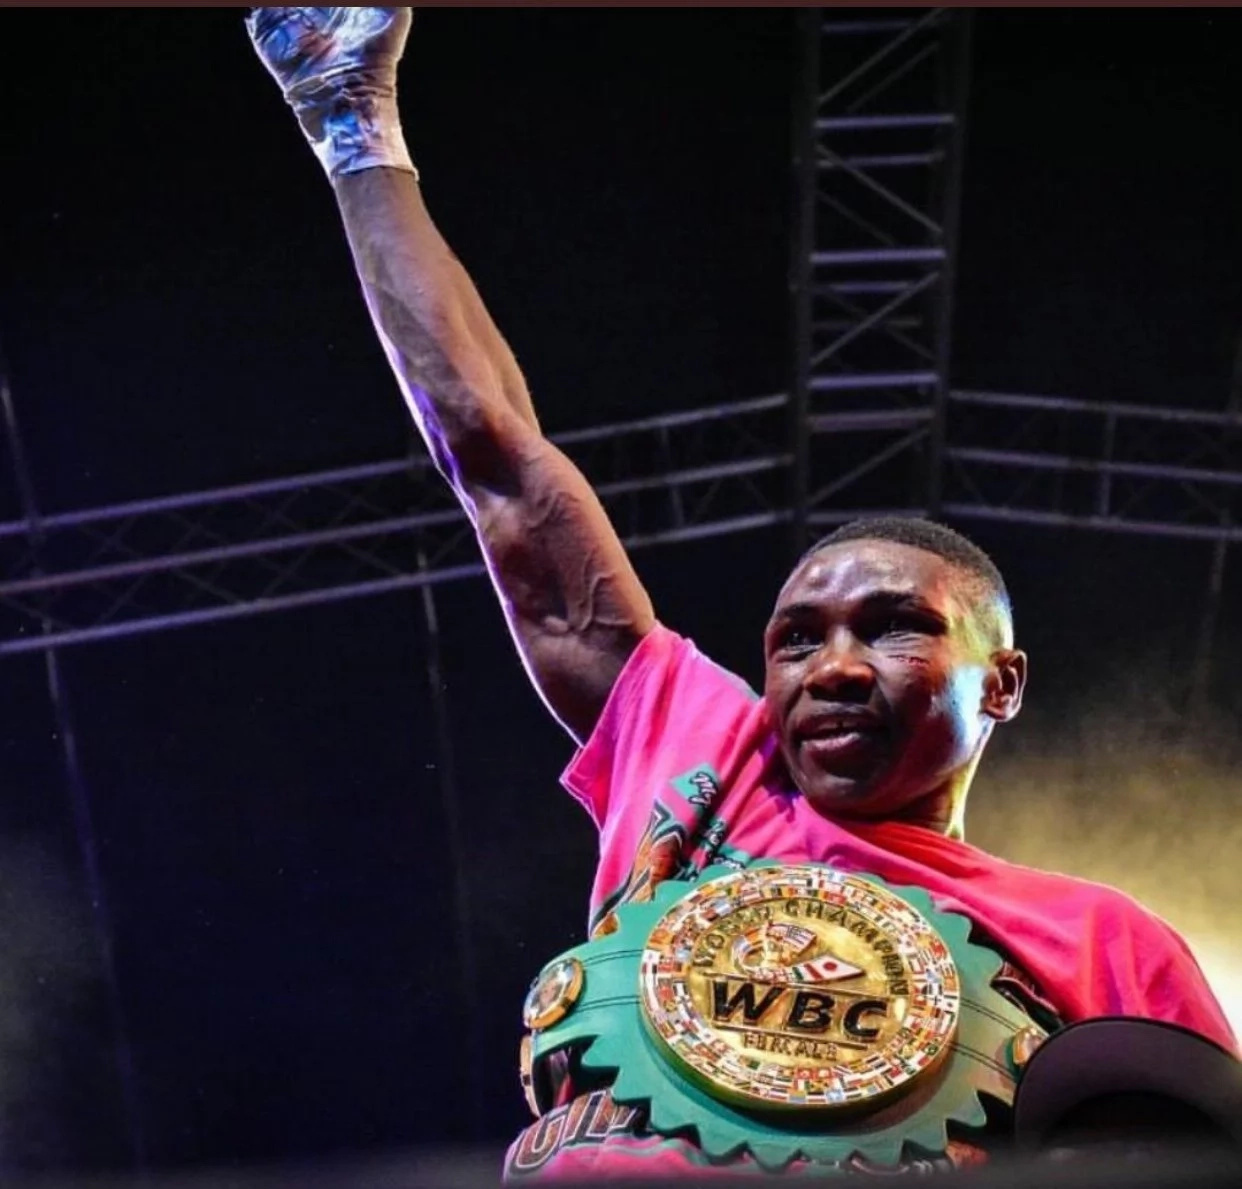 Kenya's top female boxer defends her title yet again